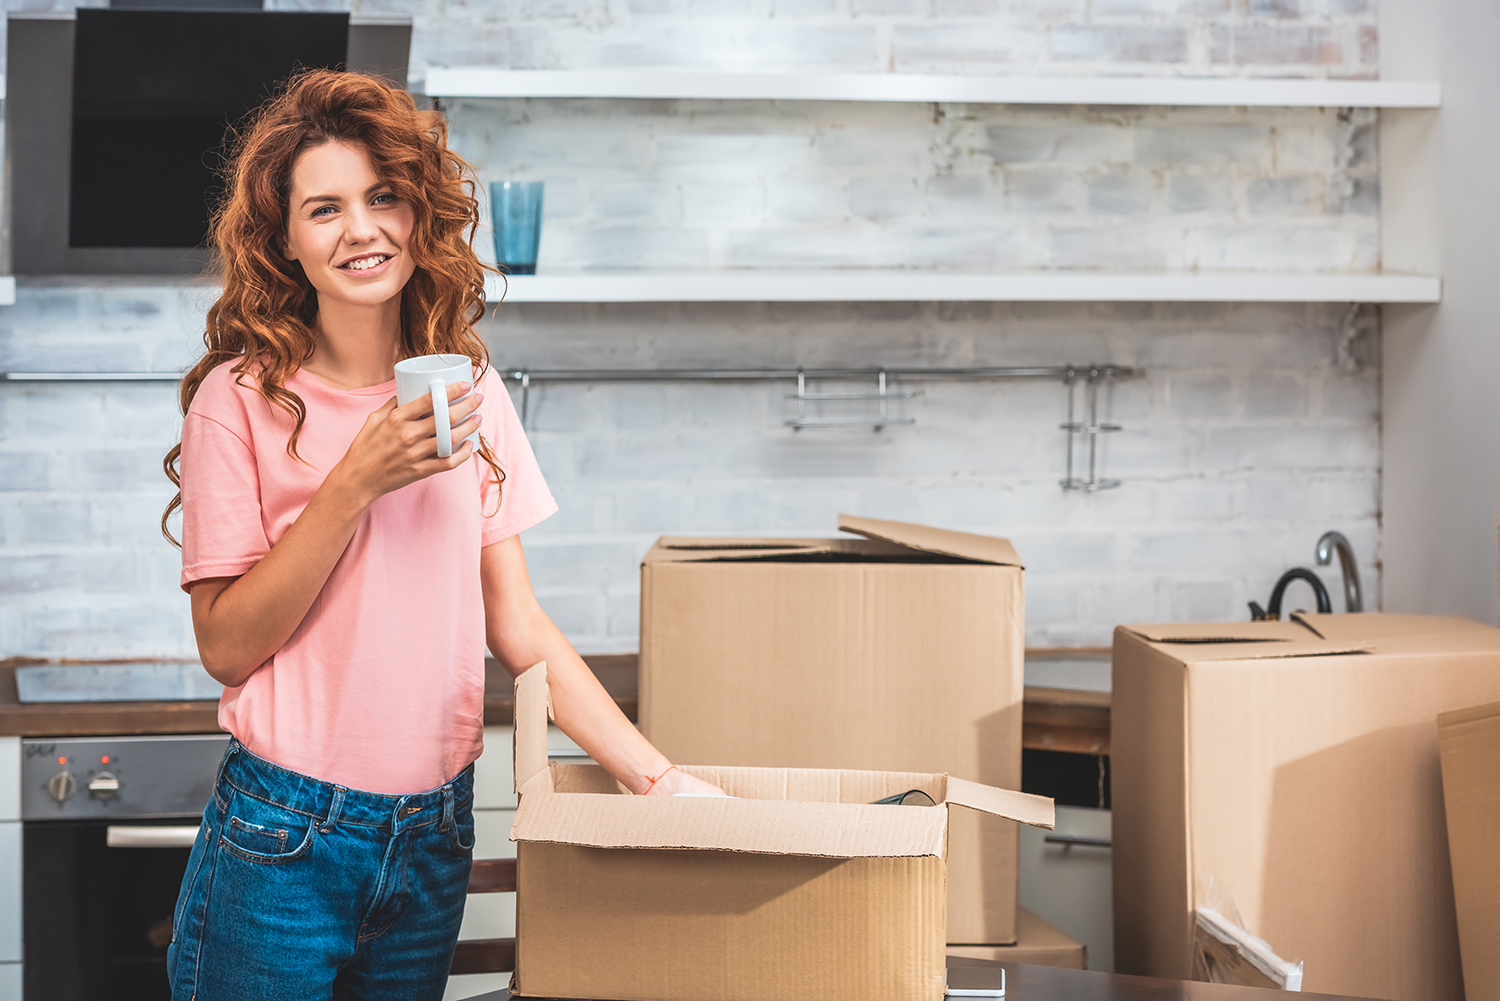 Woman Packing and Moving.